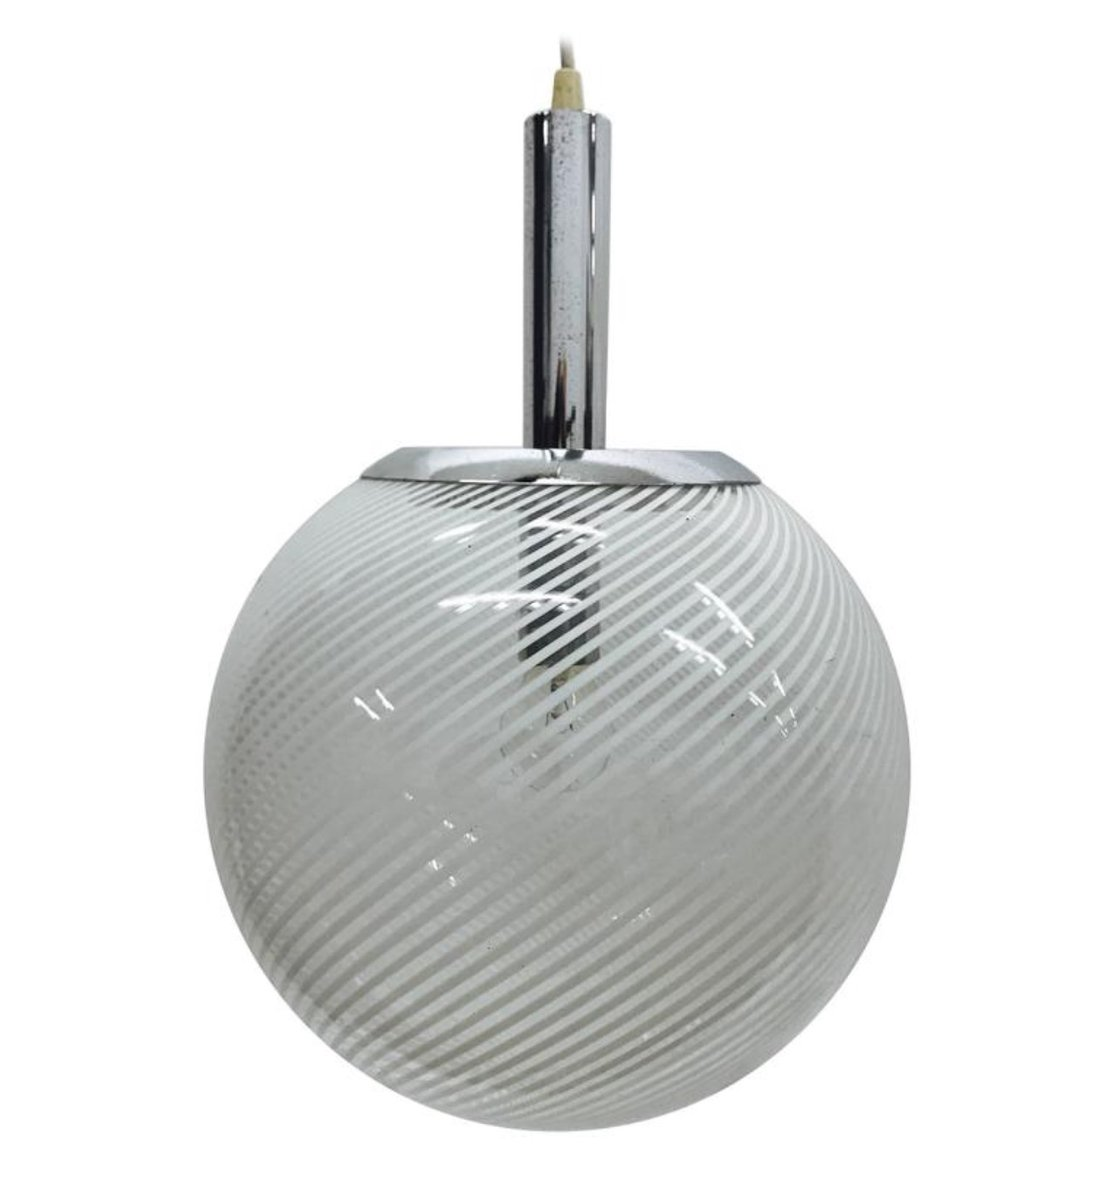 Vintage space age round pendant light from venini for sale at pamono vintage space age round pendant light from venini aloadofball Images